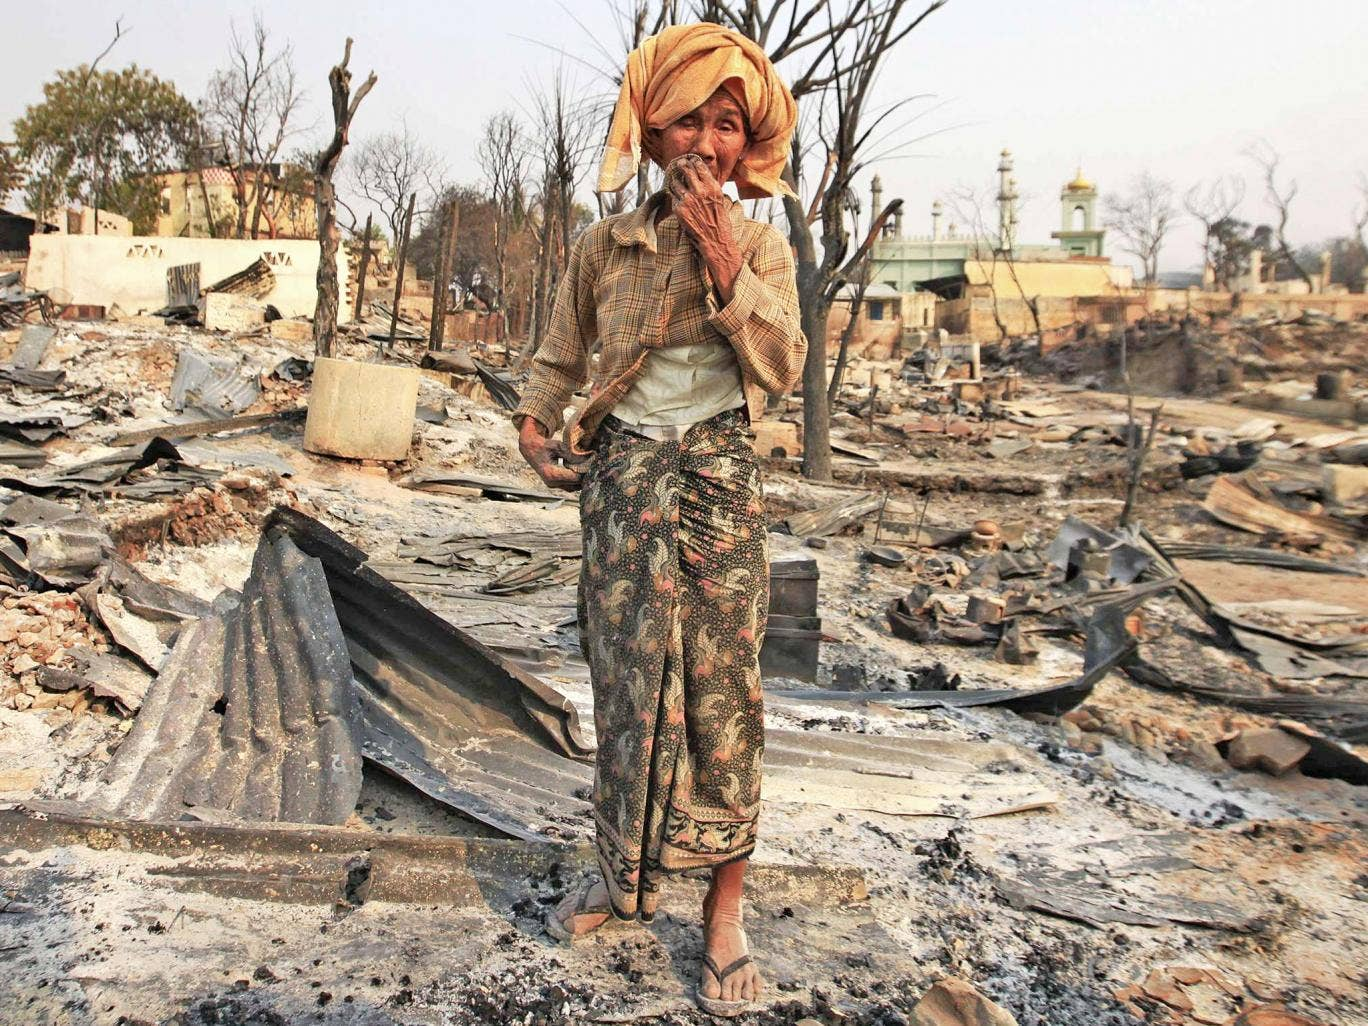 A woman cries for her home, burnt down during the riot in Meiktila in March